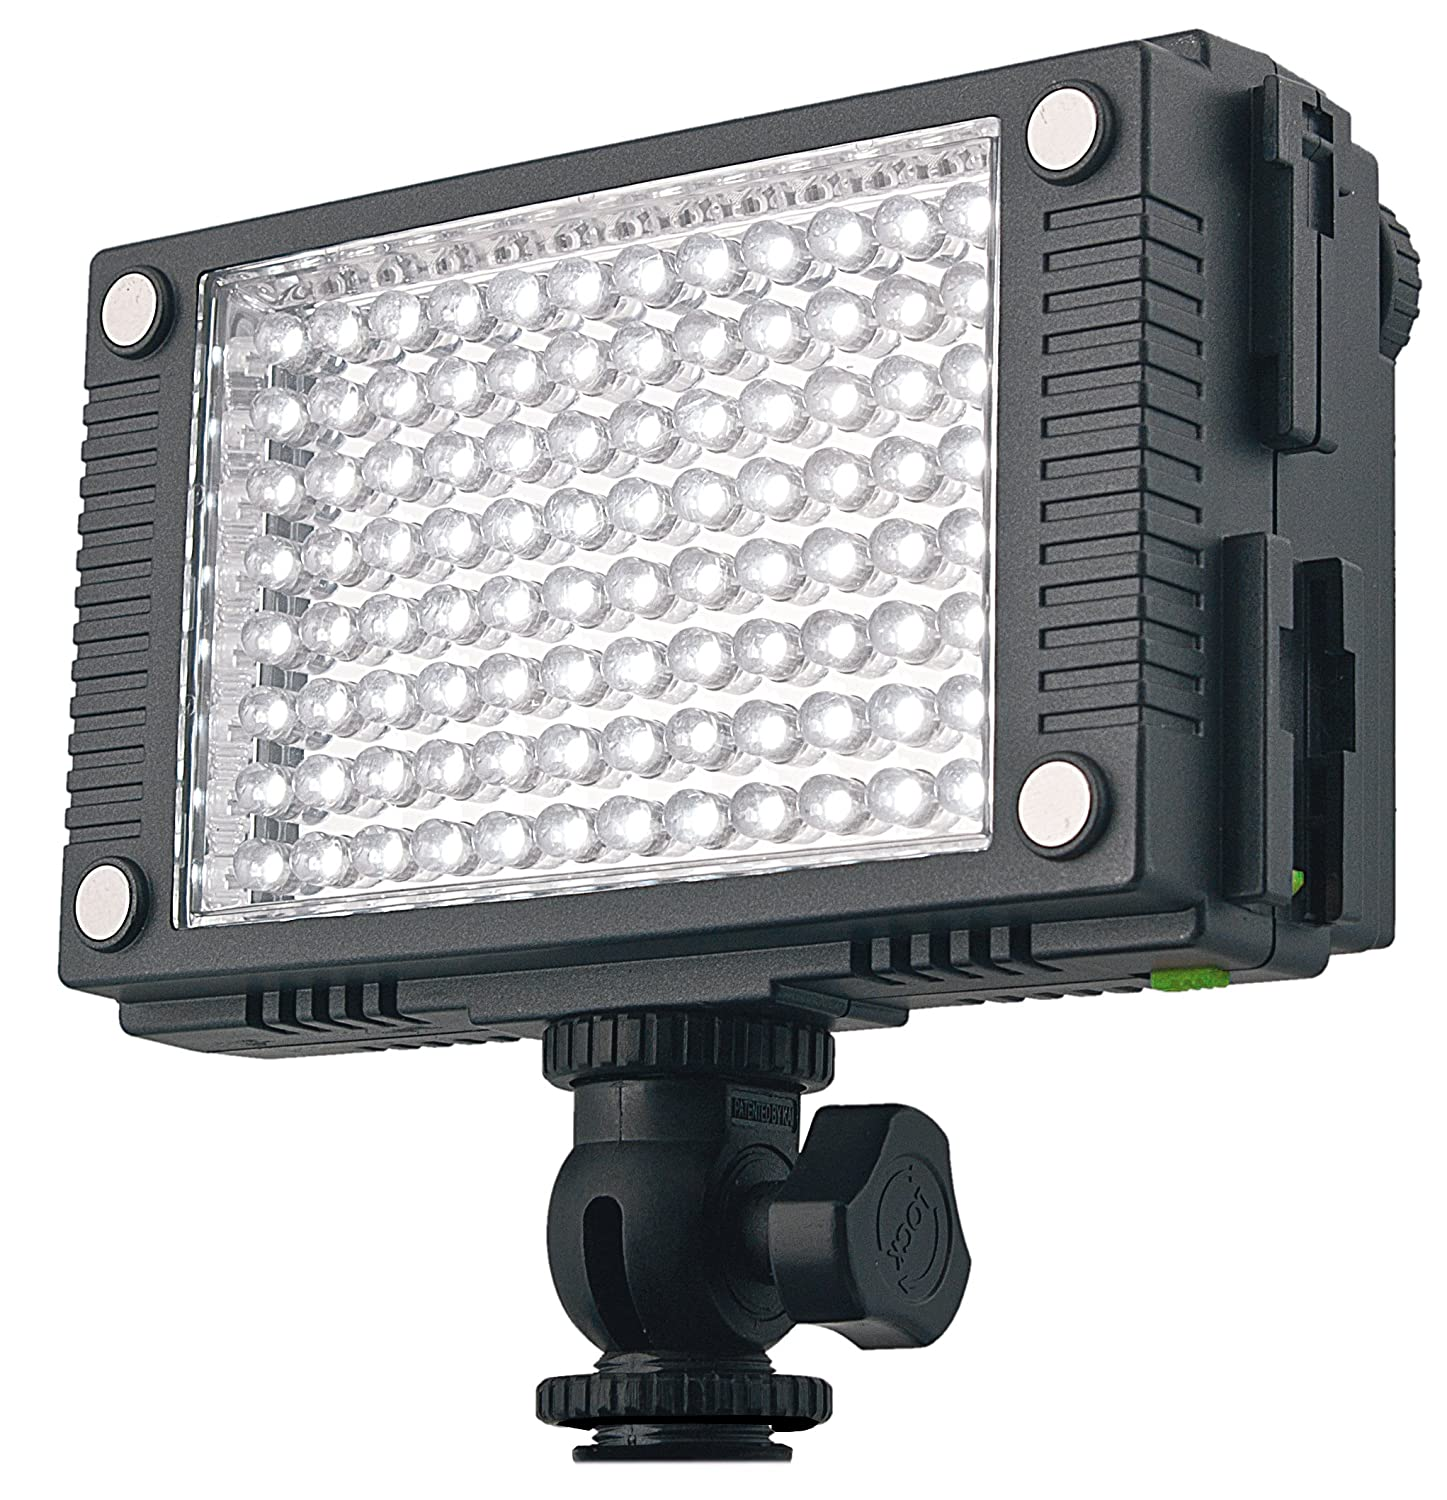 barn photo camera light led video limostudio products panel kit dimmable barndoor door lighting studio continuous